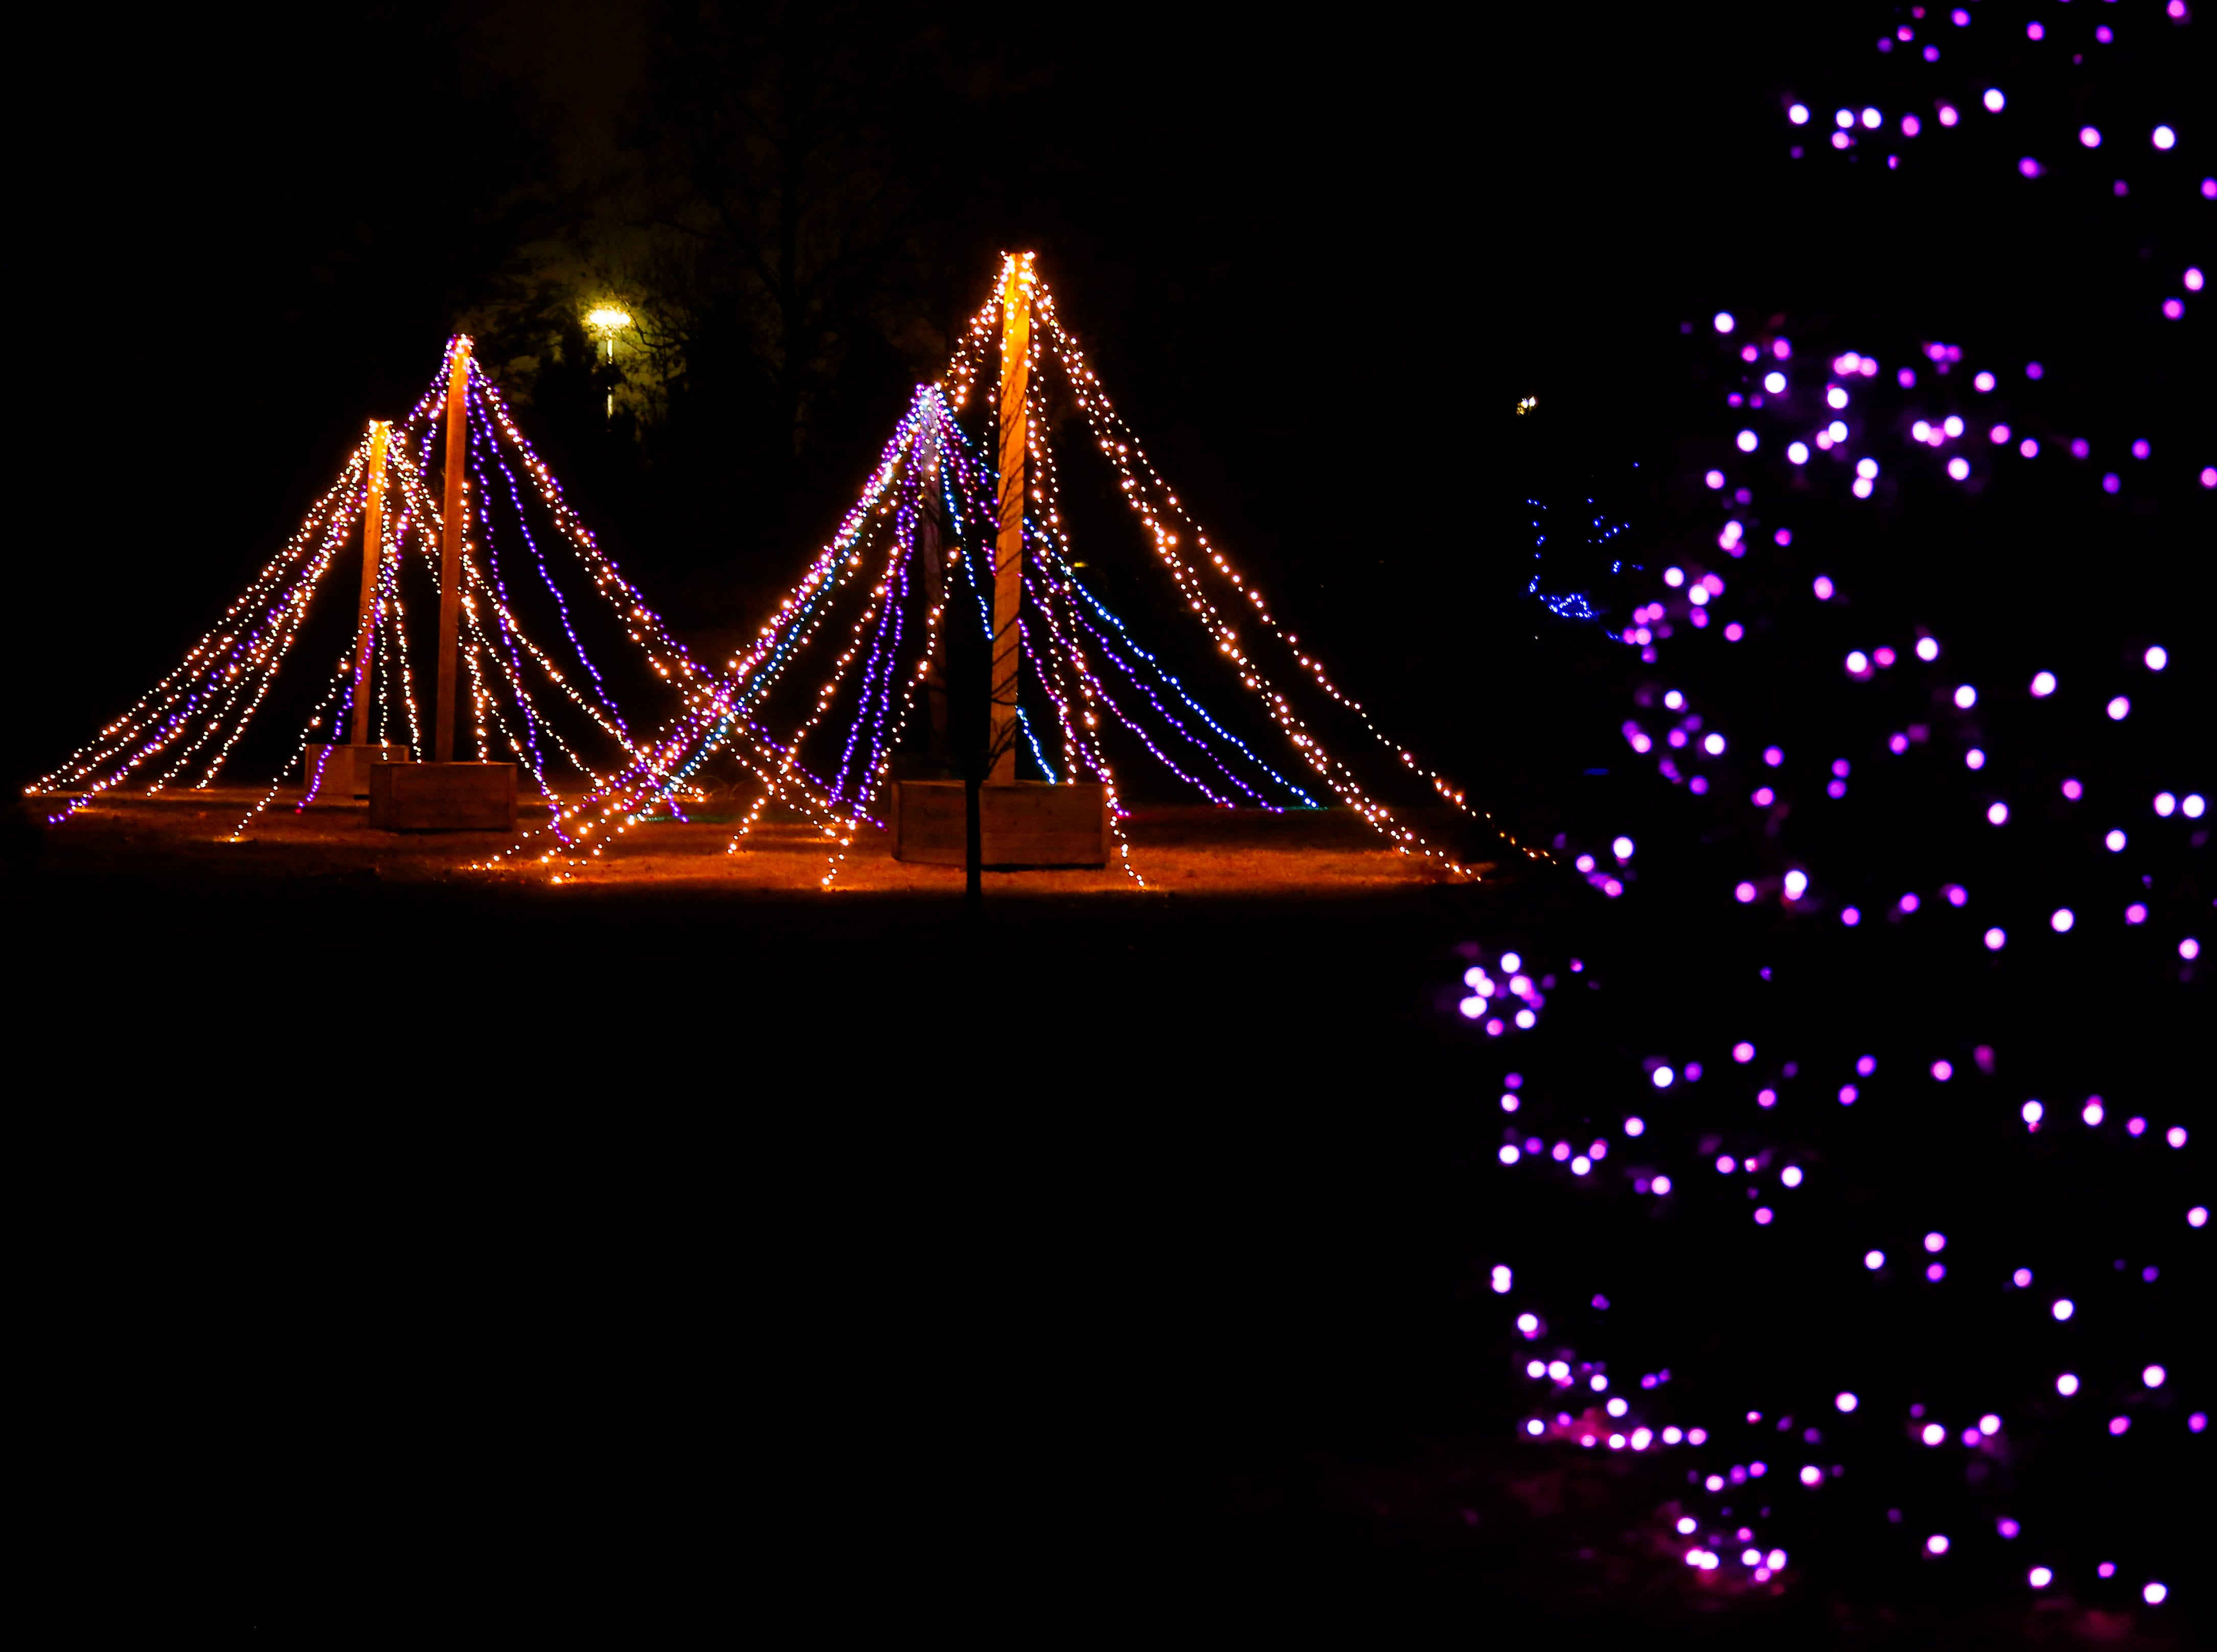 The Mizumoto Japanese Stroll Garden will be open and lit up with Christmas lights on Friday and Saturday nights through Dec. 22, 2018. Admission is $4.